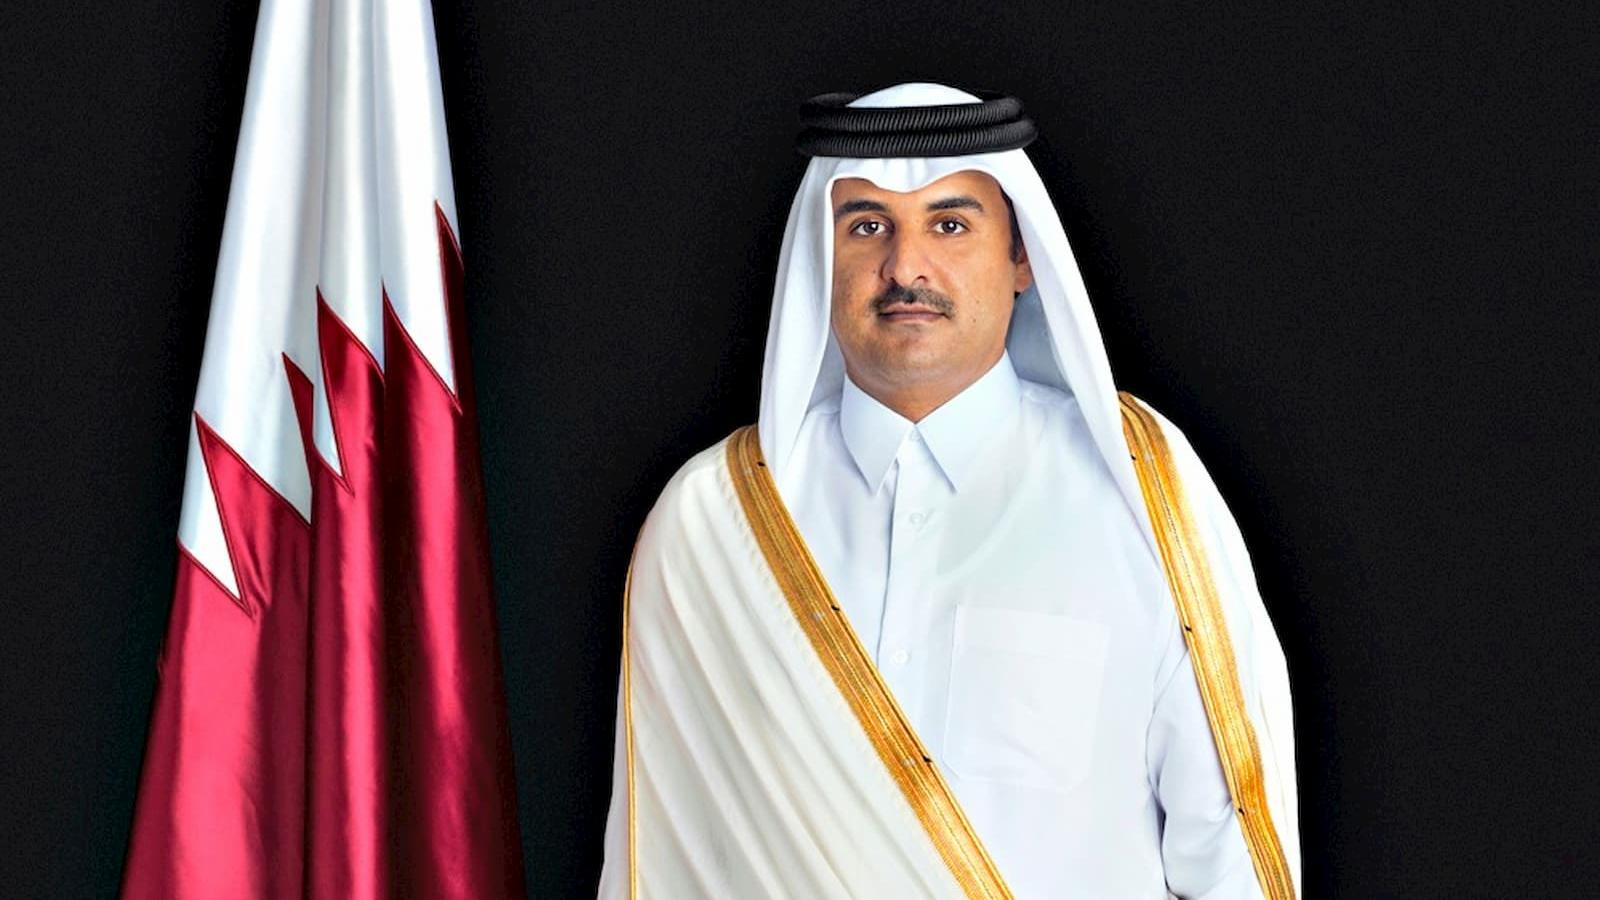 Qatar is ready to help Italy in dealing with coronavirus, HH the Amir says to Italian PM